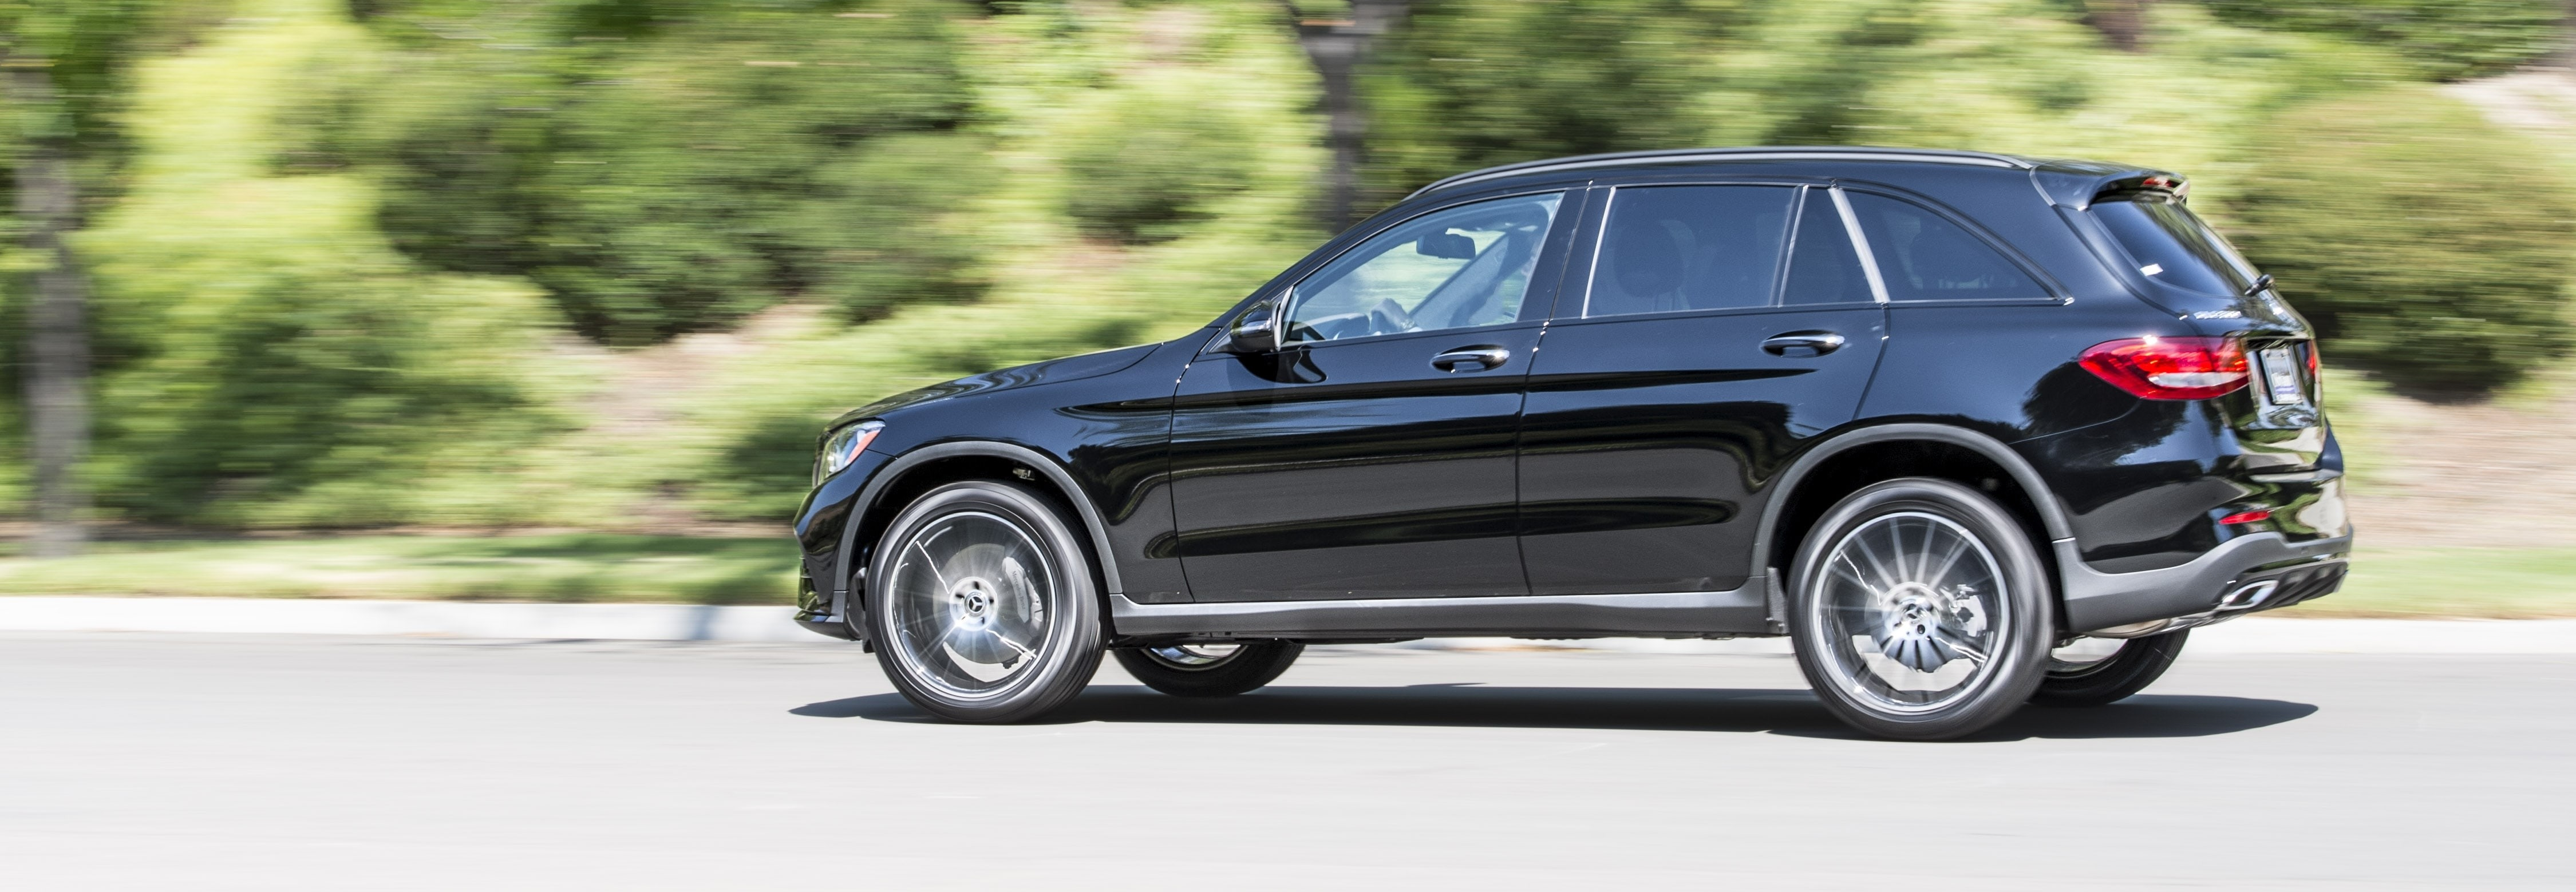 Fletcher jones mercedes lease specials fiat world test drive for Mercedes benz ontario dealers